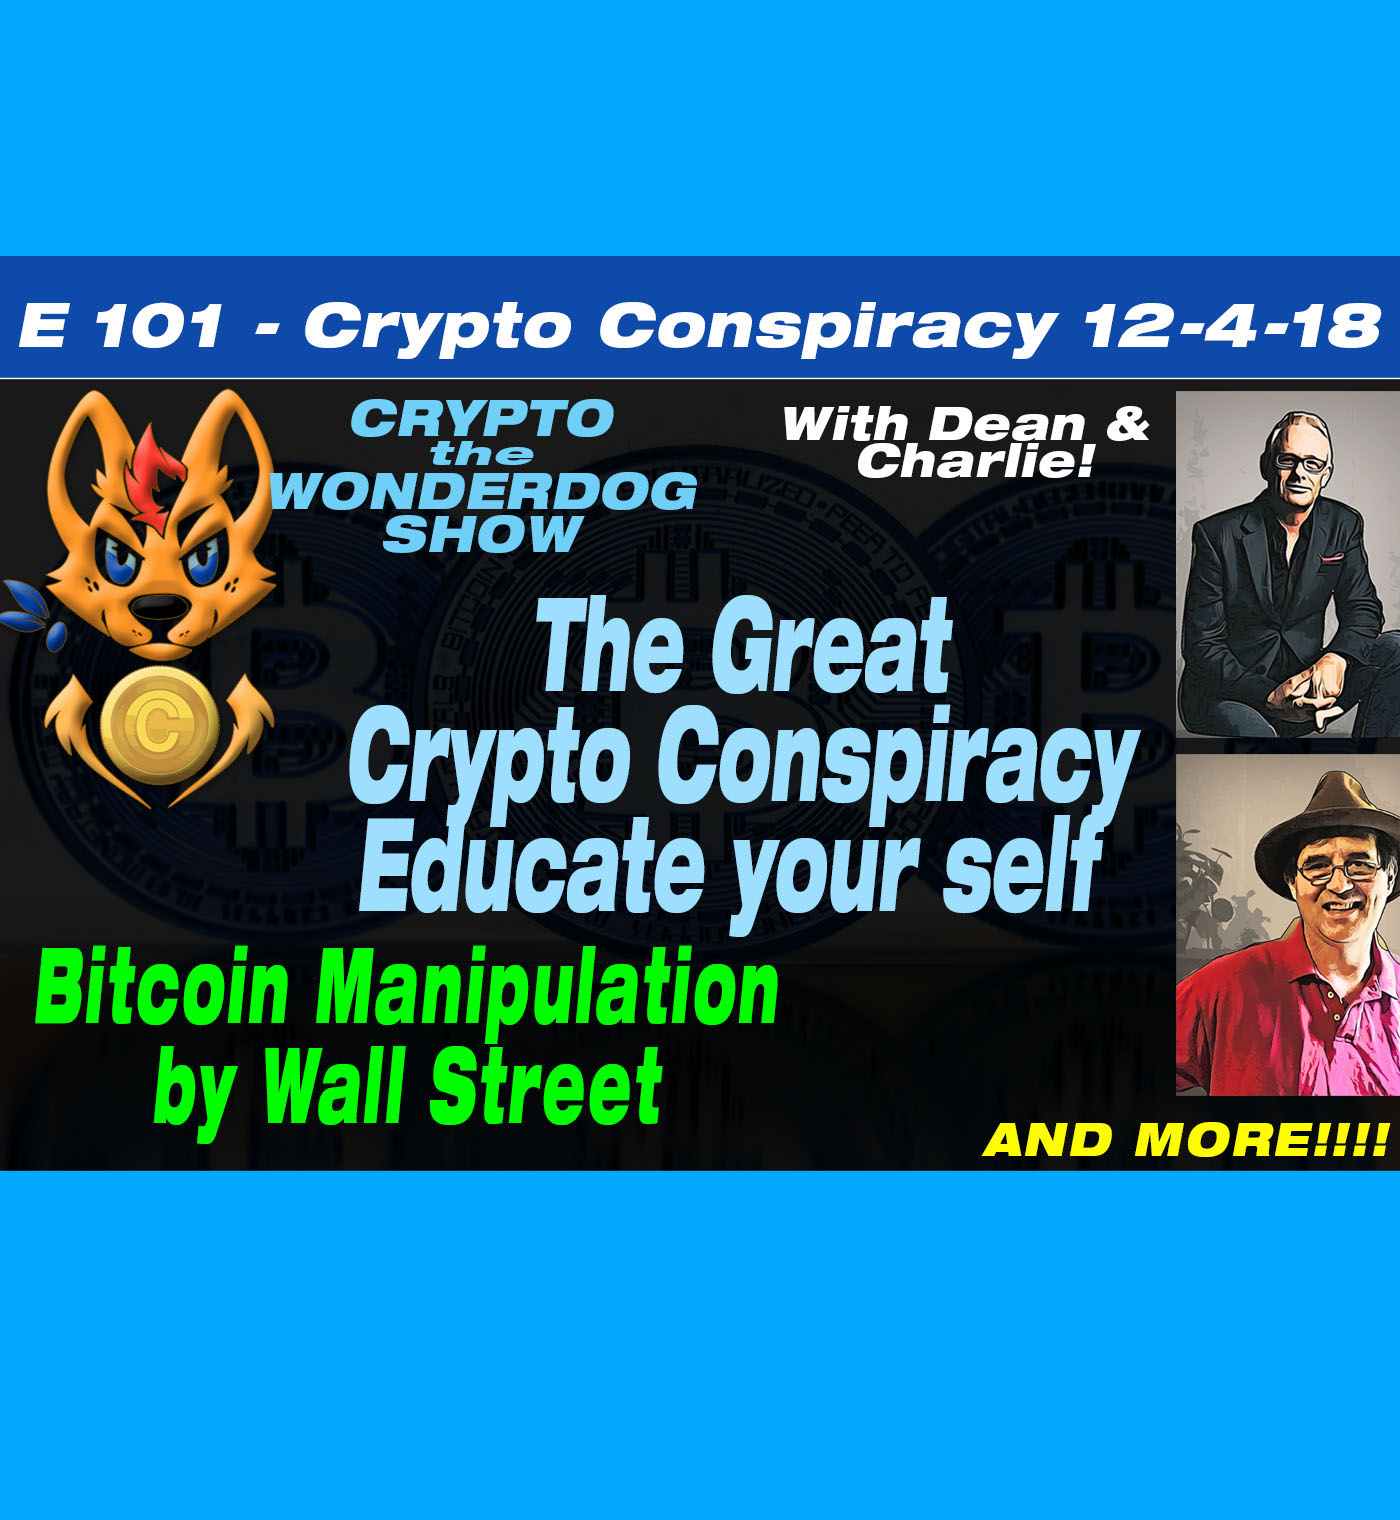 Bitcoin Manipulation by Wall Street - The Great Crypto Conspiracy (PROOF) 2018